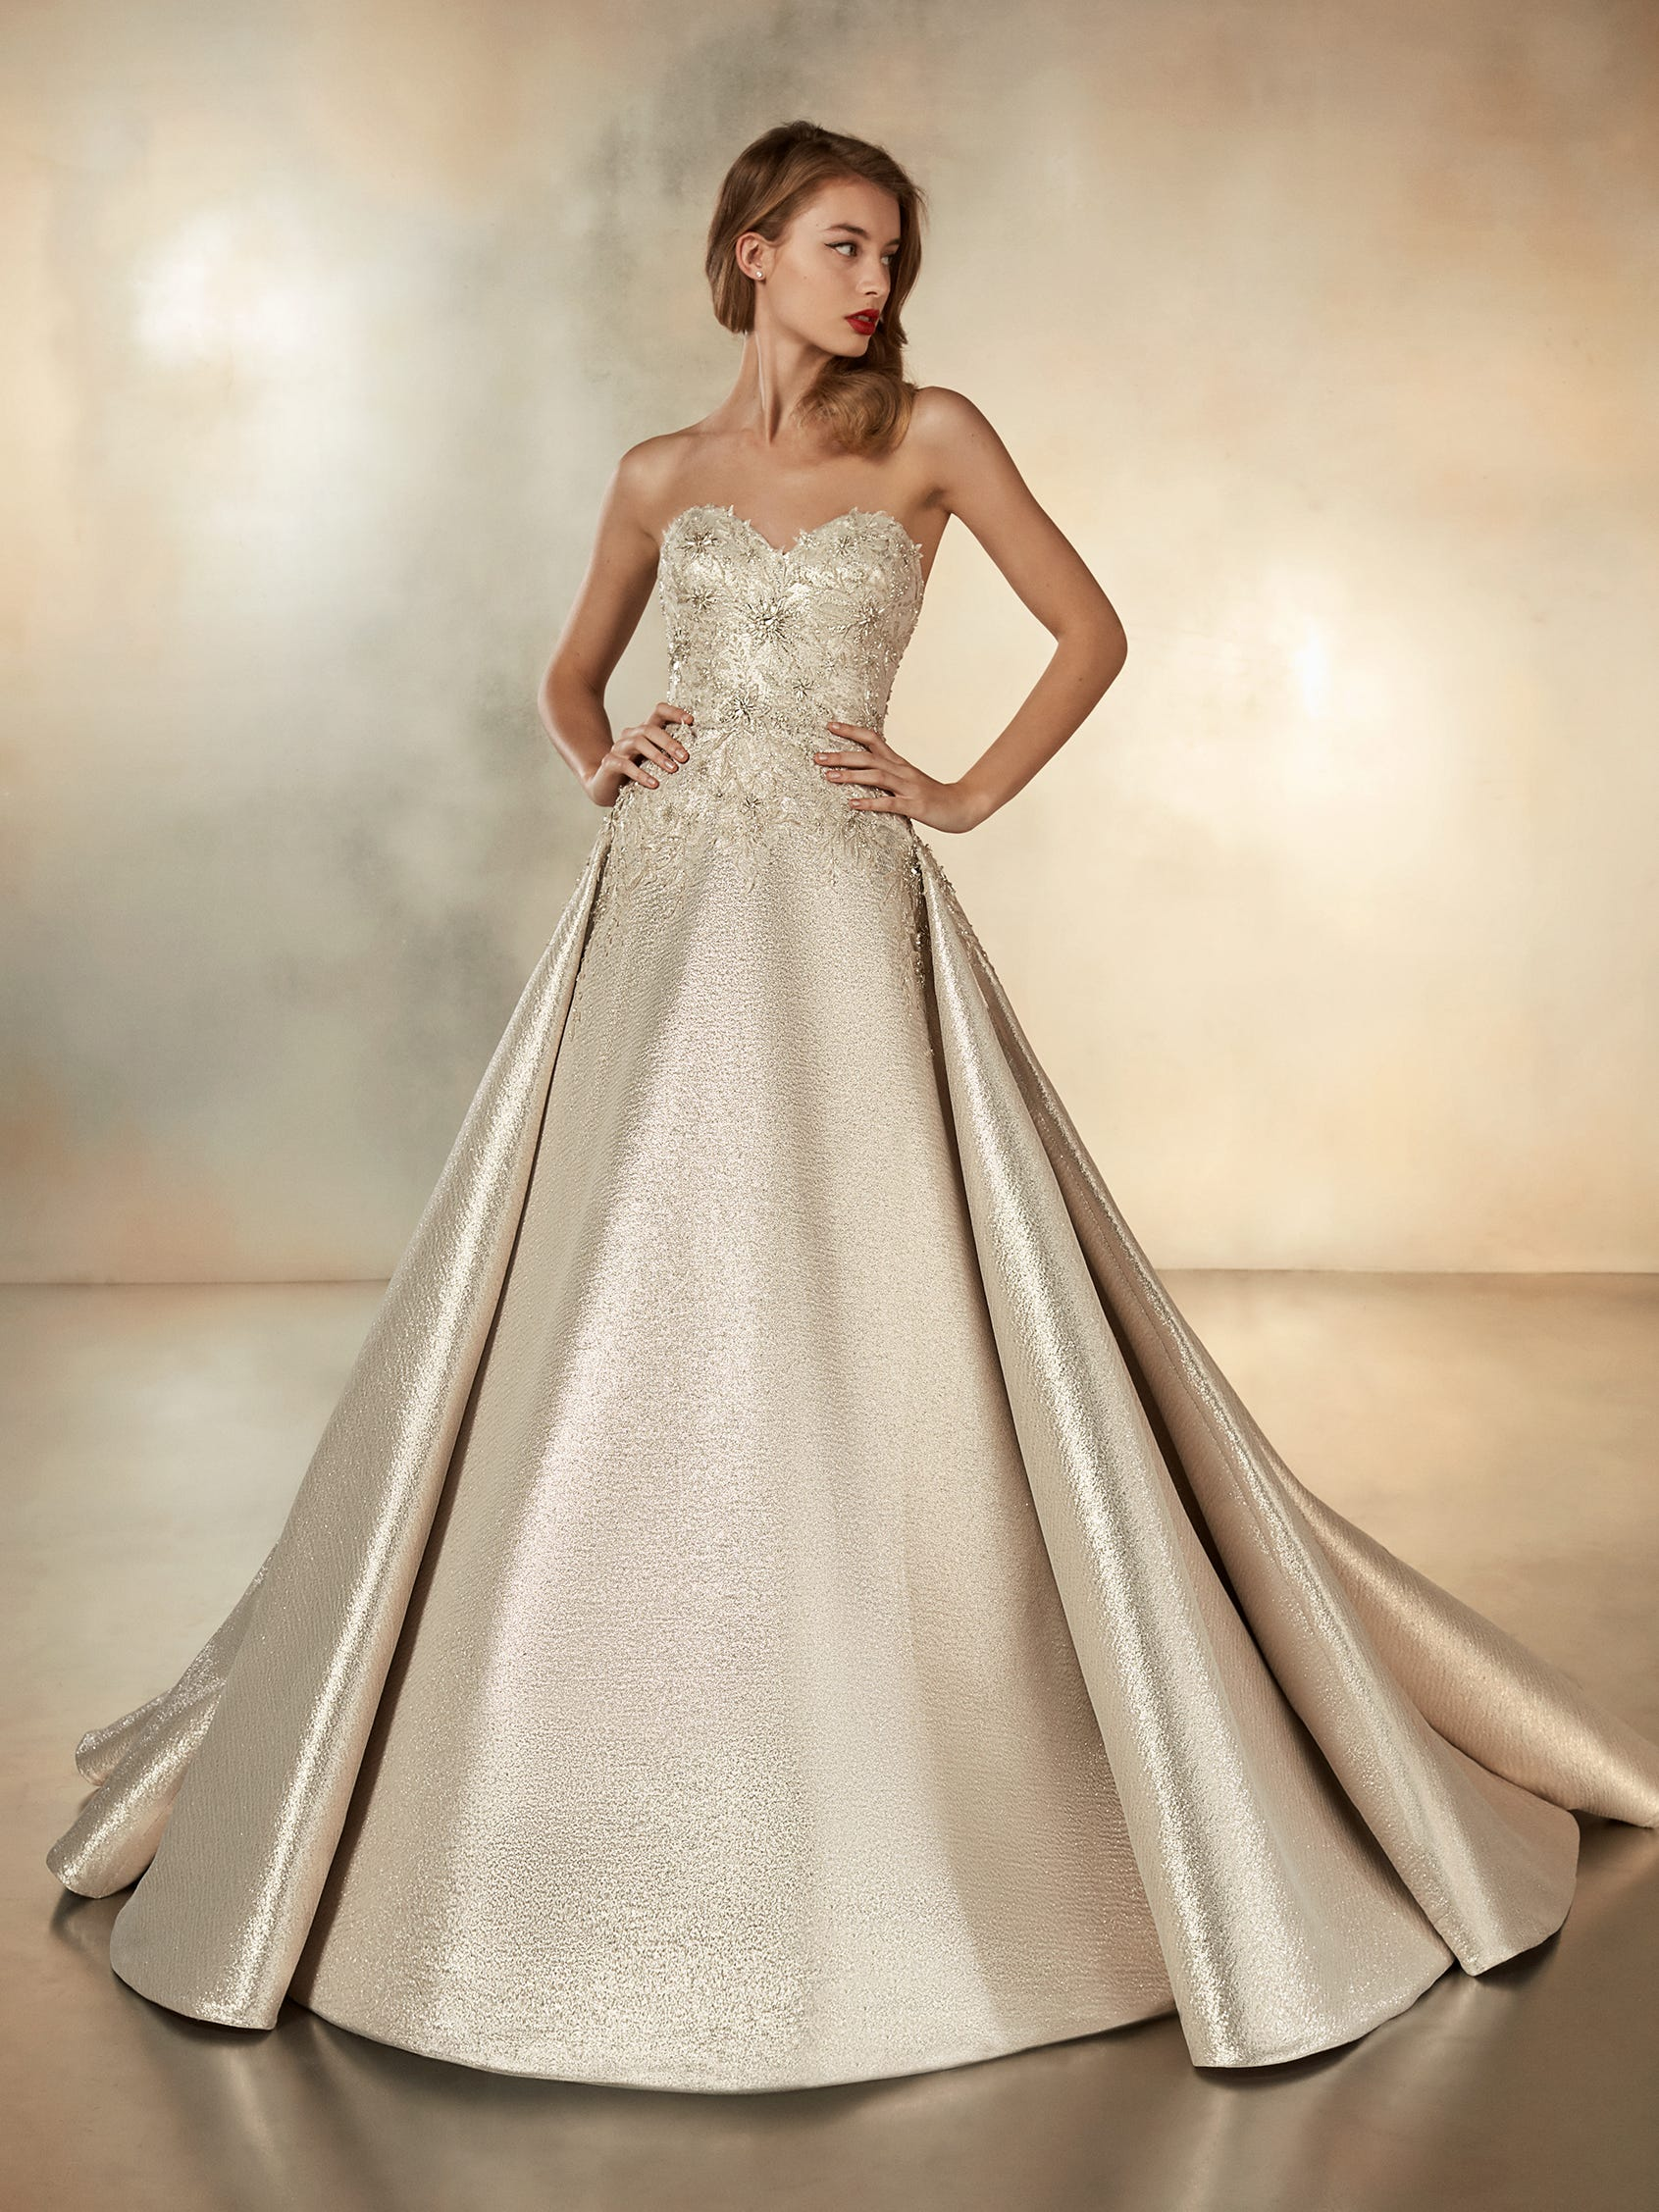 atelier pronovias 2020 cruise collection zieht in die stores ein